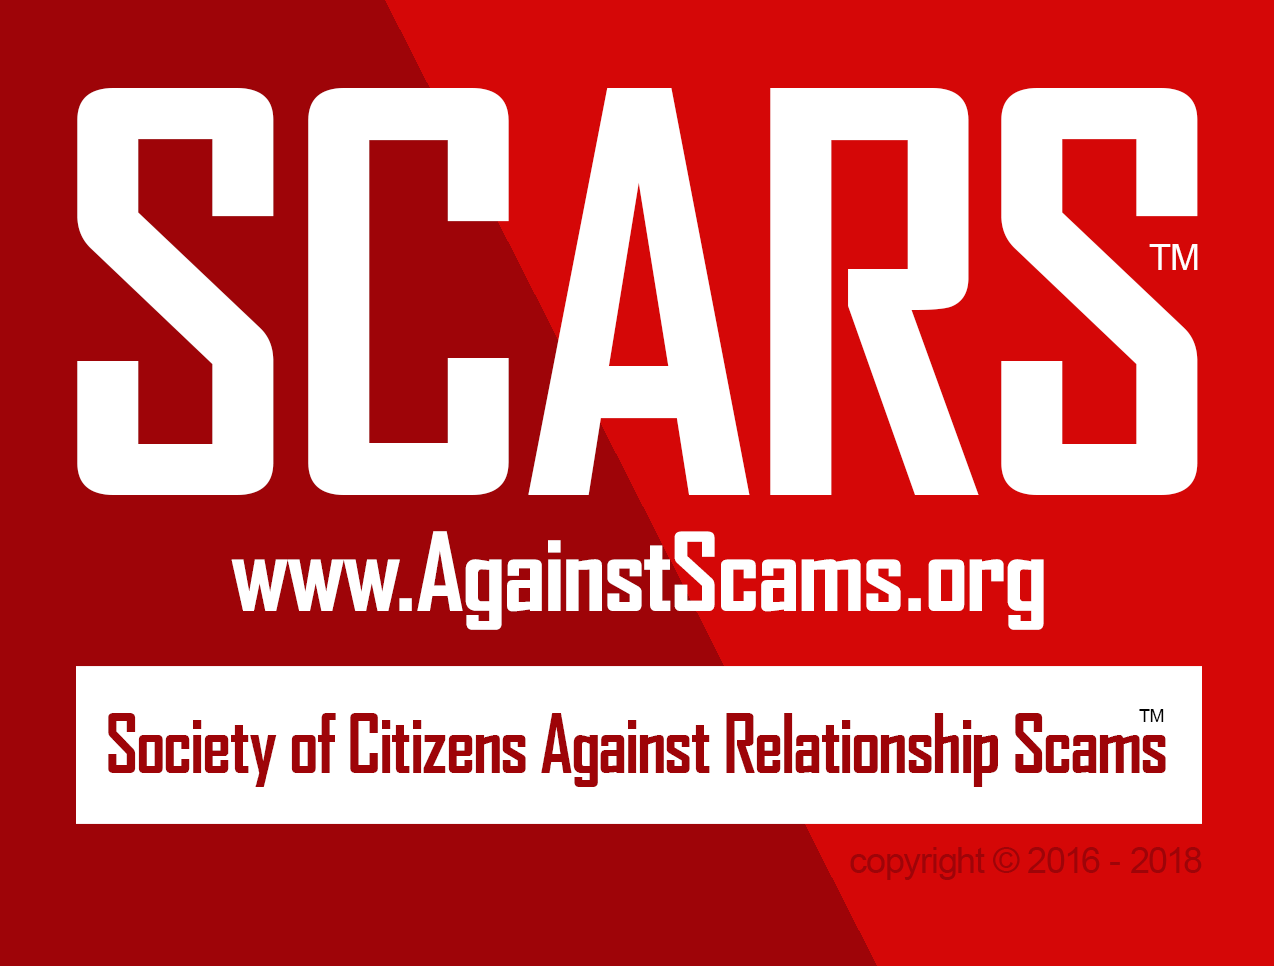 The Society of Citizens Against Romance Scams